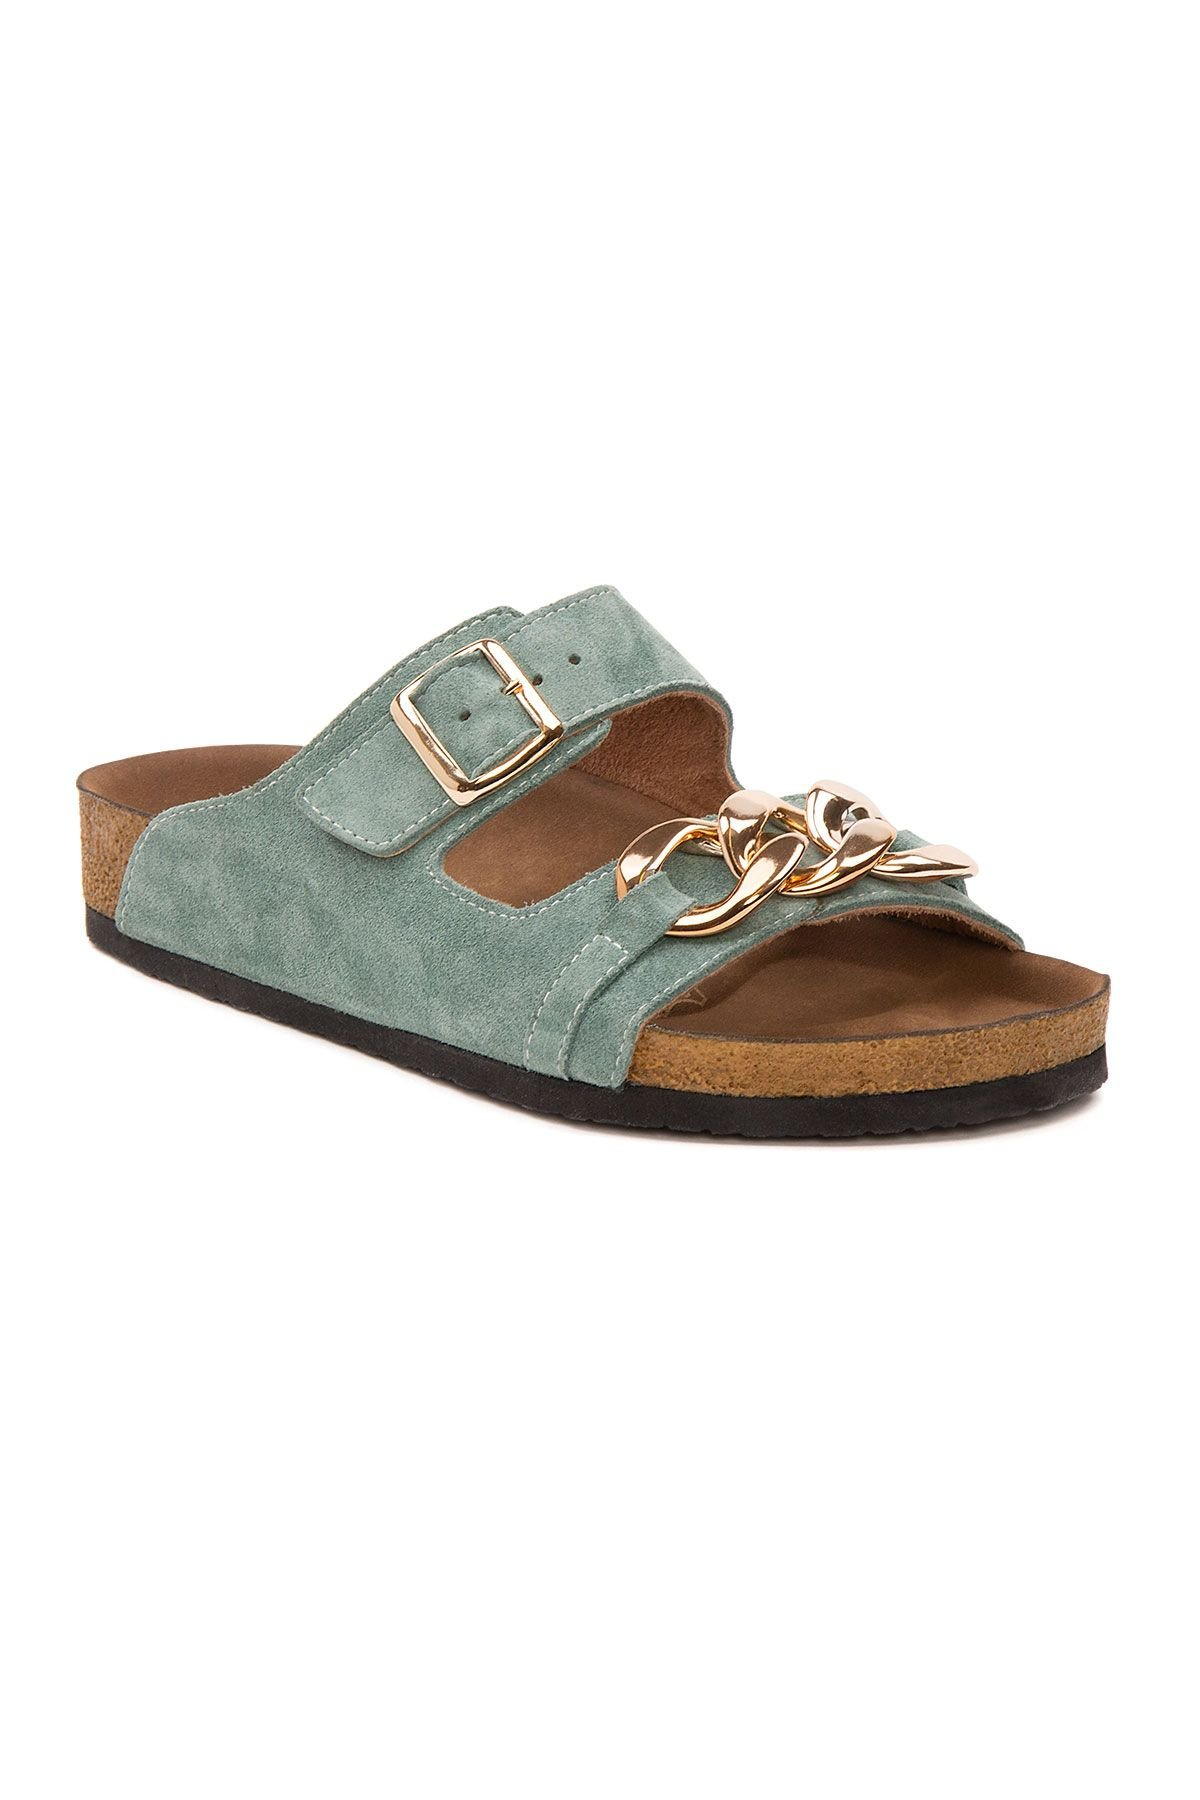 Pegia Women's Chain Detailed Suede Slippers 215531 Mint